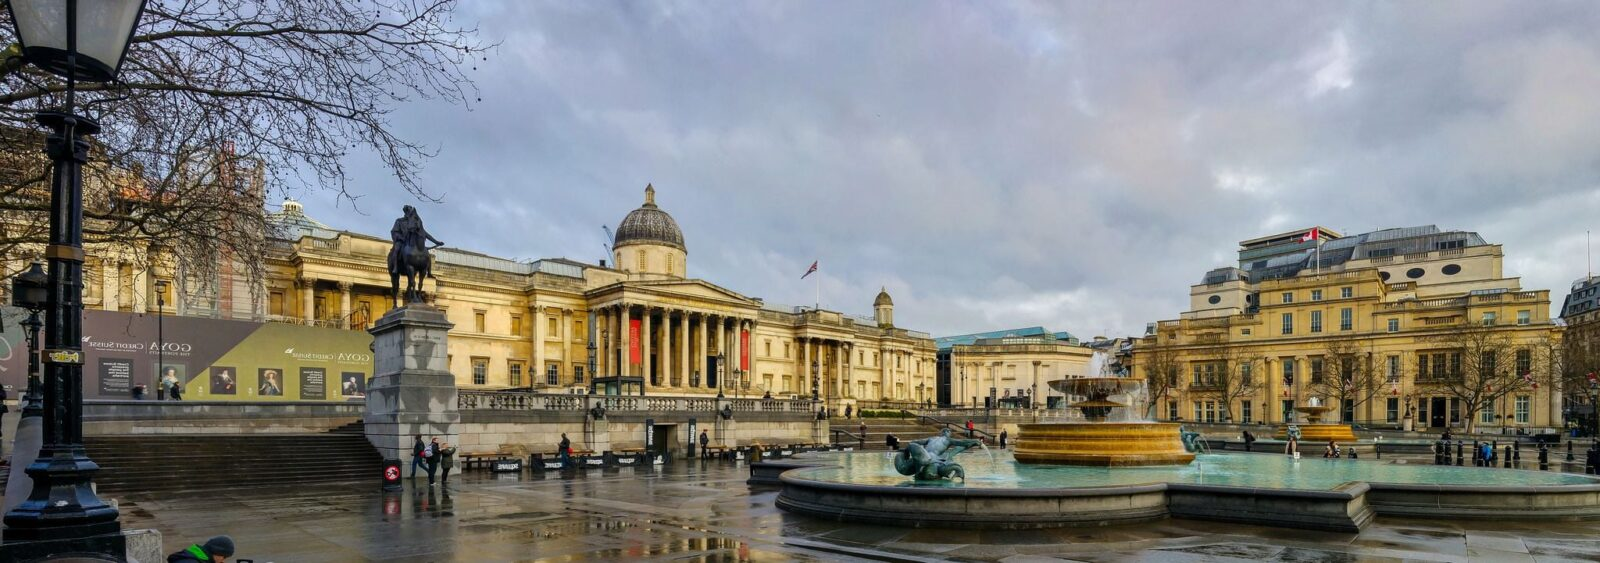 Best Trafalgar Square wide wallpapers backgrounds